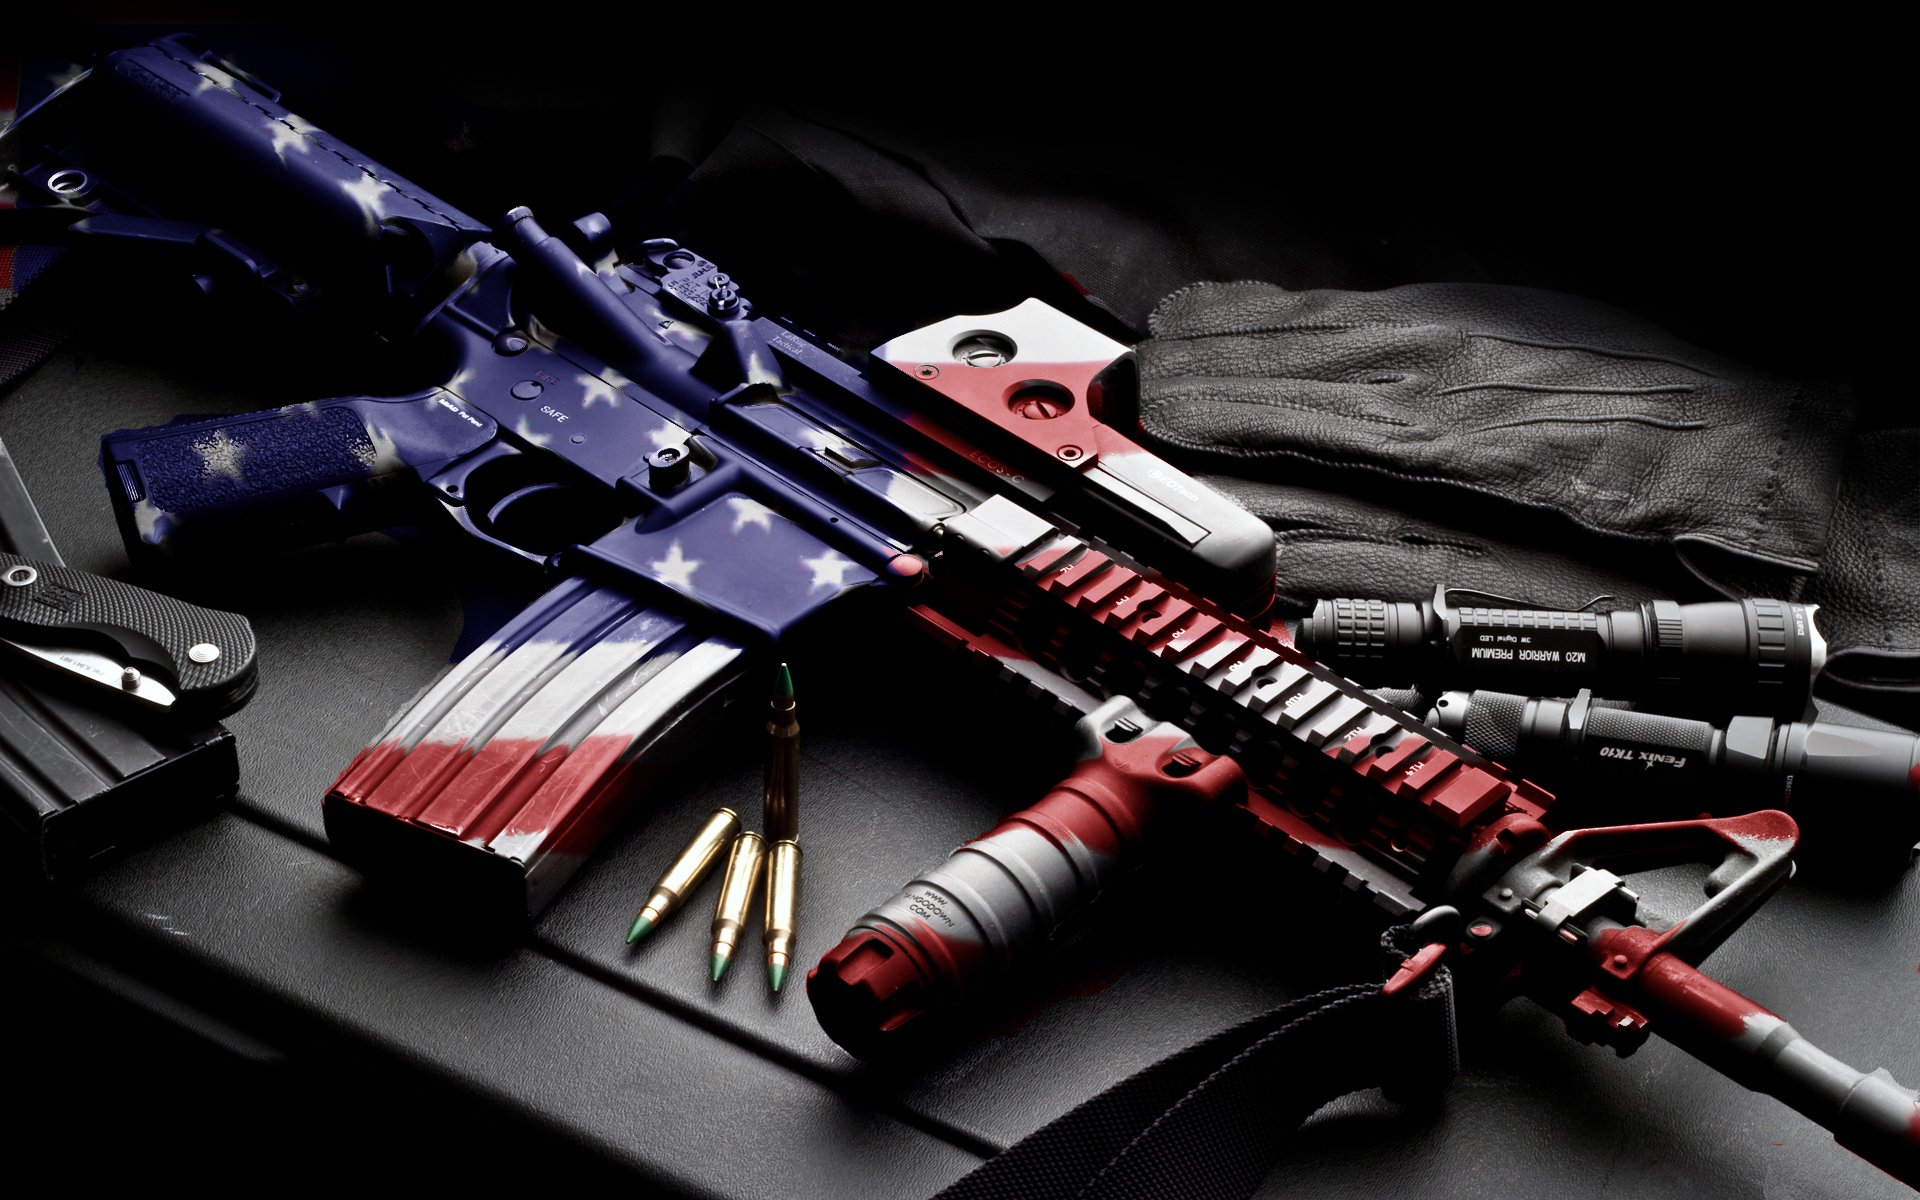 Weapons - Colt AR-15  M16 Rifle Wallpaper